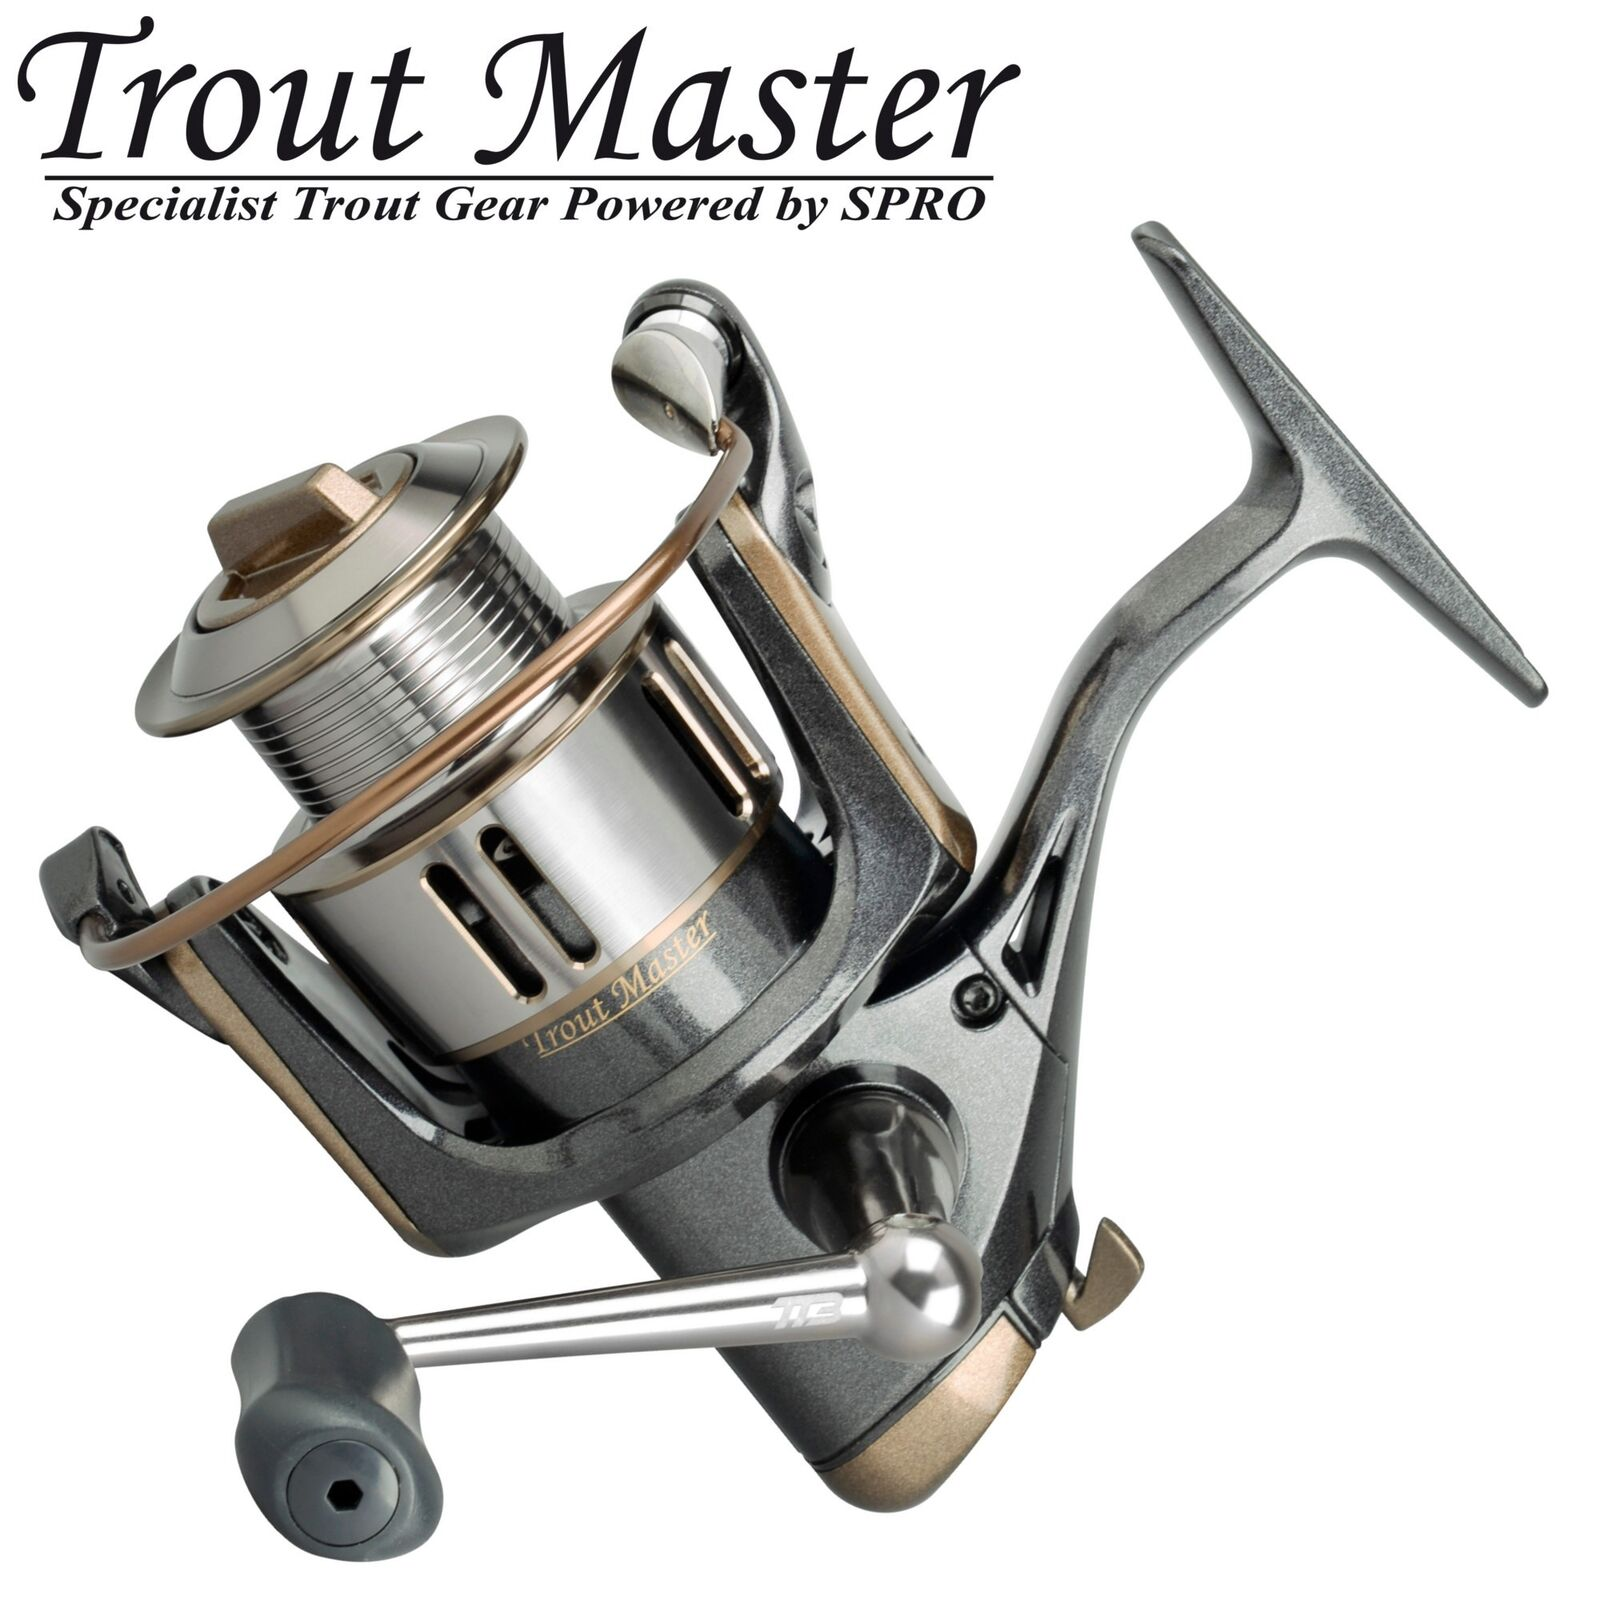 Trout Master Tactical Trout 3 - Stationärrolle zum Forellenangeln, Forellenrolle